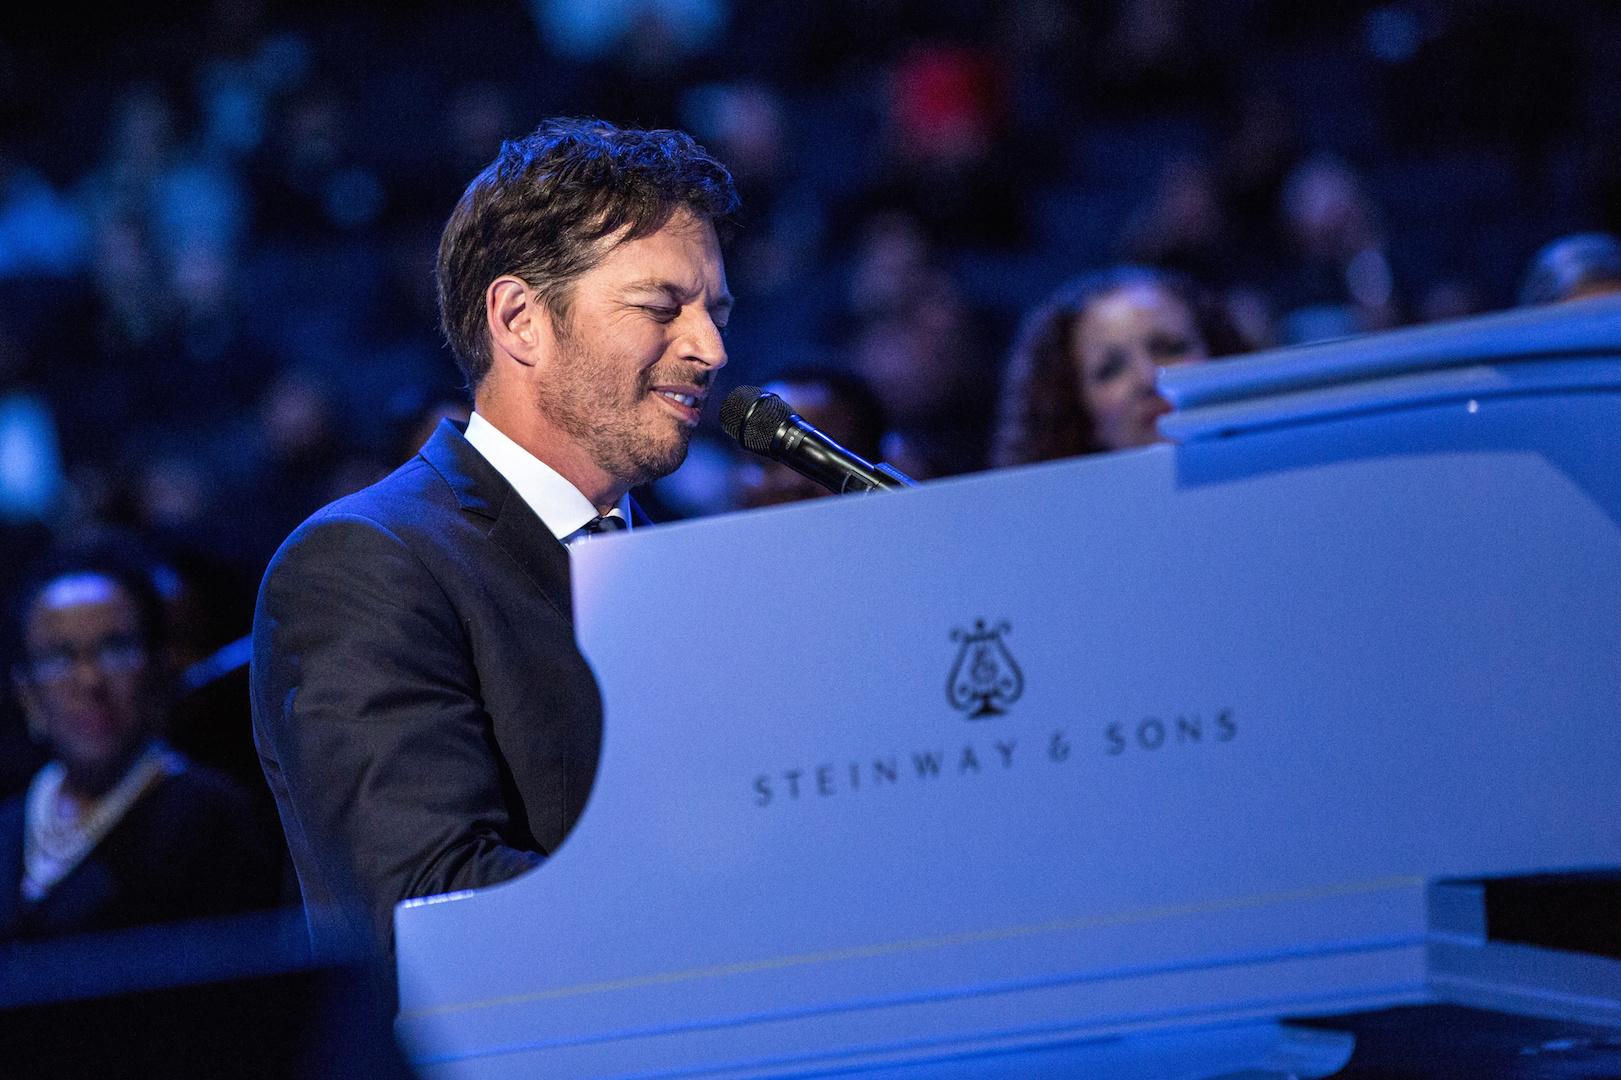 Harry Connick Jr. performs prior to a Mass celebrated by Pope Francis at Madison Square Garden in New York City. (CNS photo/Andrew Burton, pool via EPA)